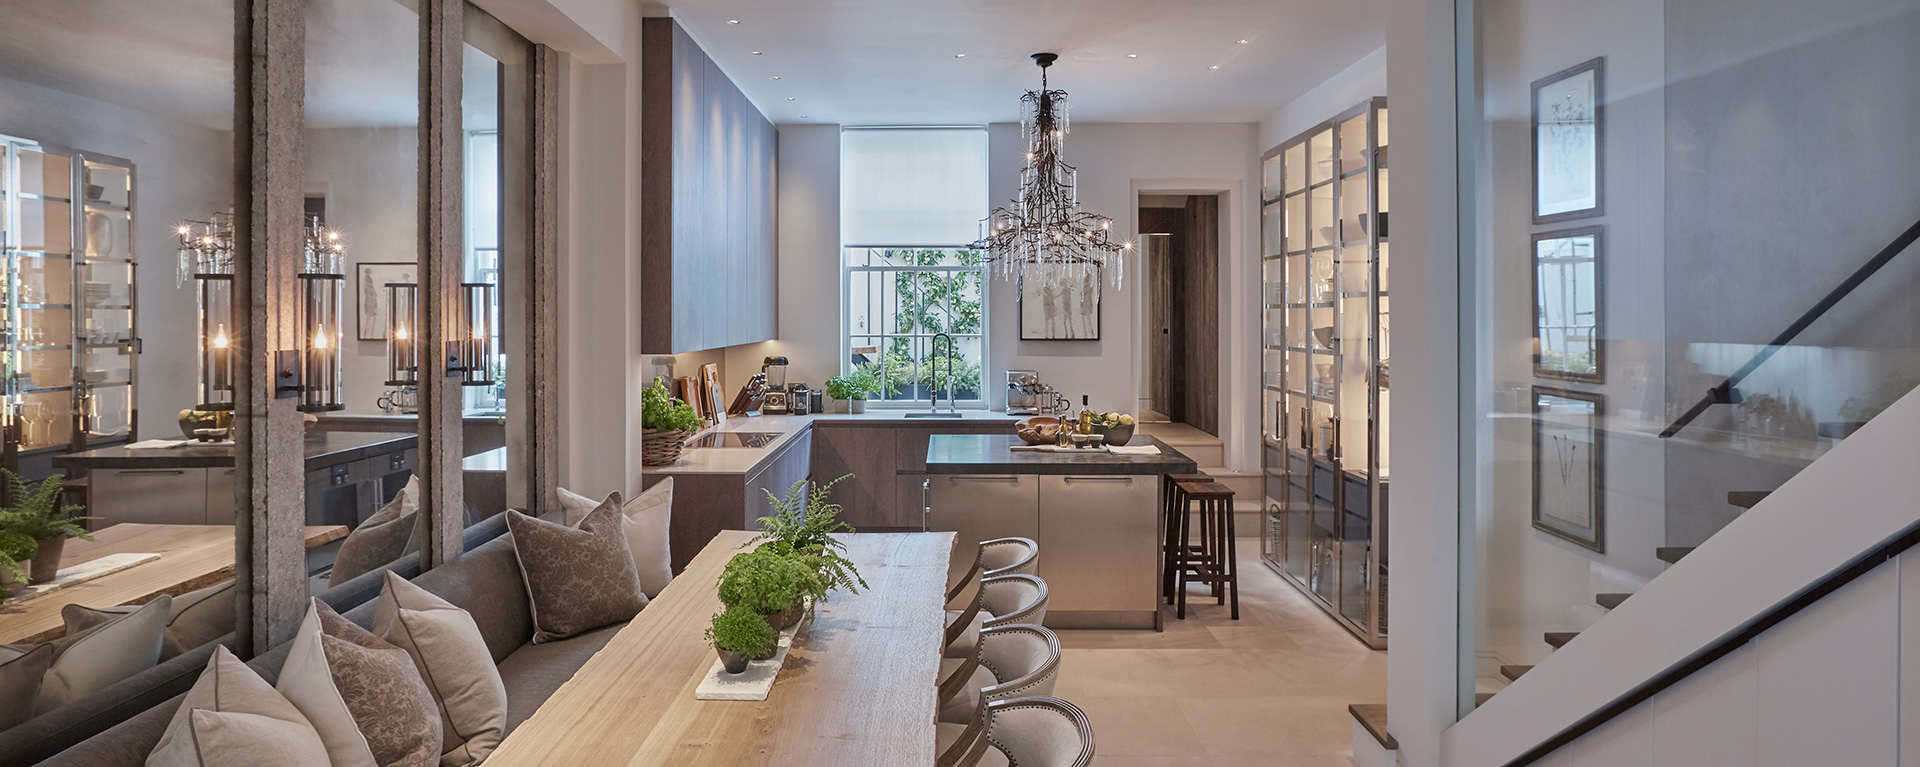 An open-plan kitchen with casual dining and a relaxed living area Louise Bradley| London| STIR